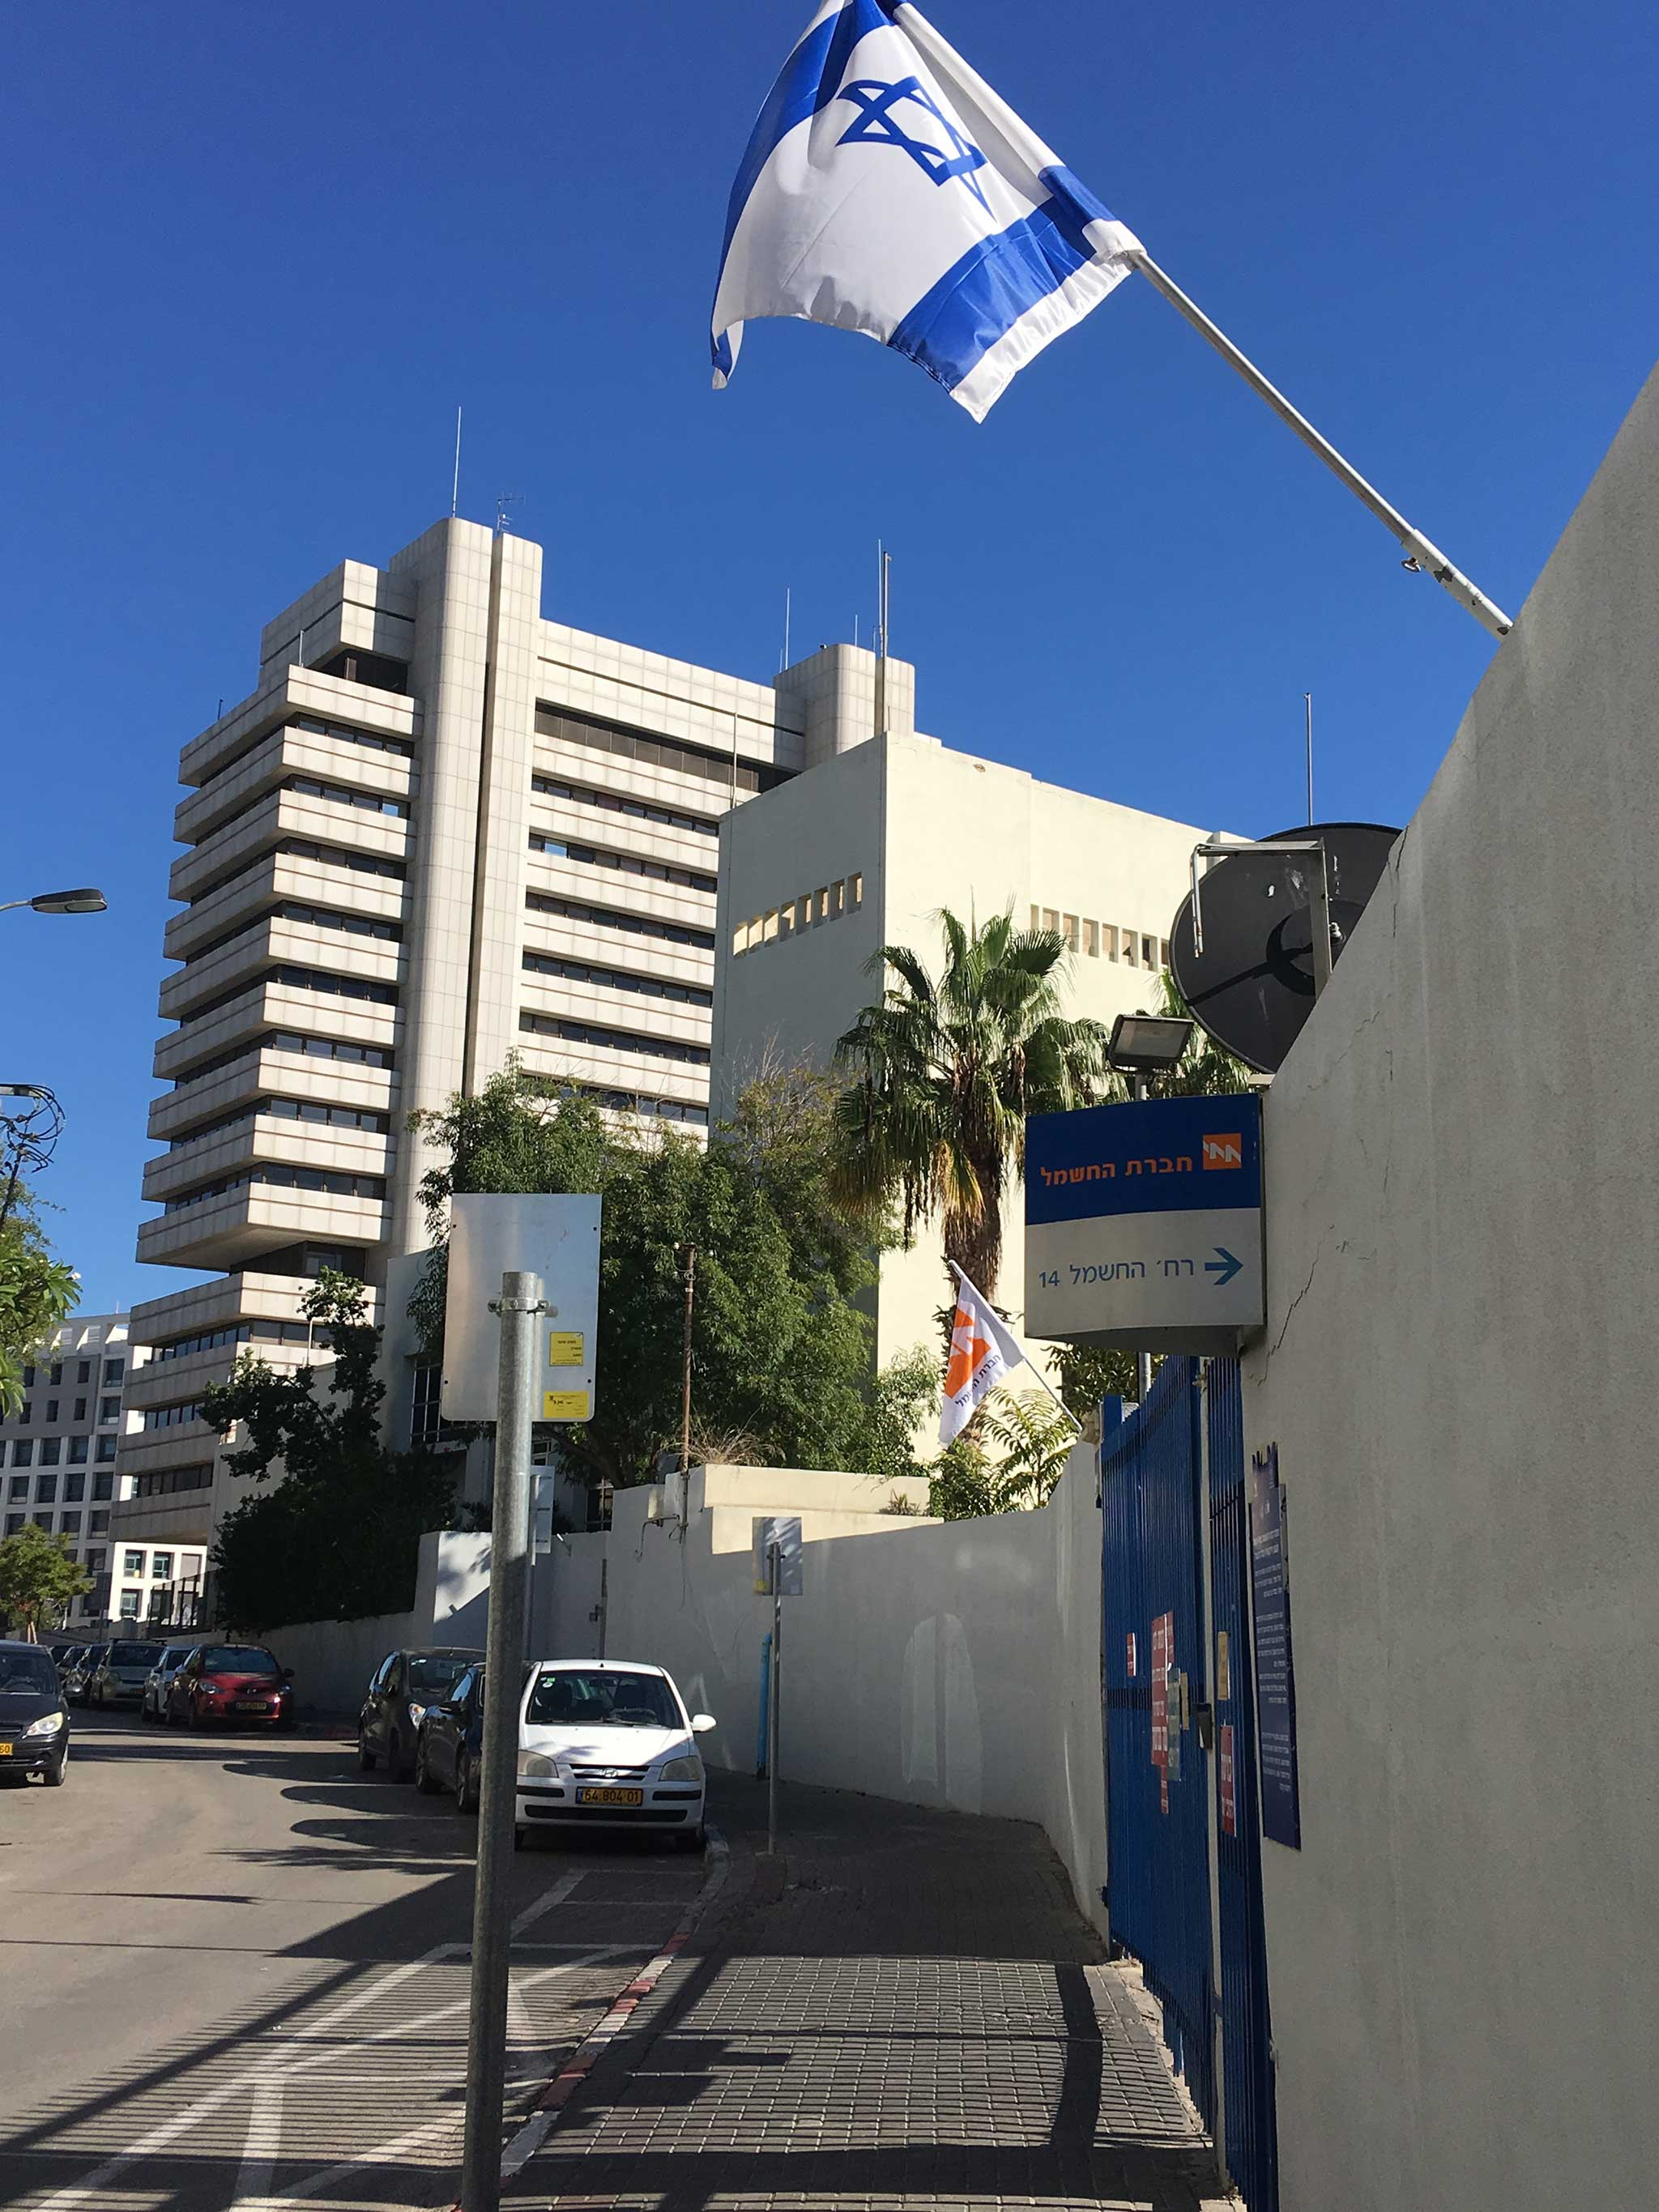 First power plant in the Land of Israel‏‎ on Tel Aviv audio tour The Electrifying Story of Gan HaHashmal and Its Architecture